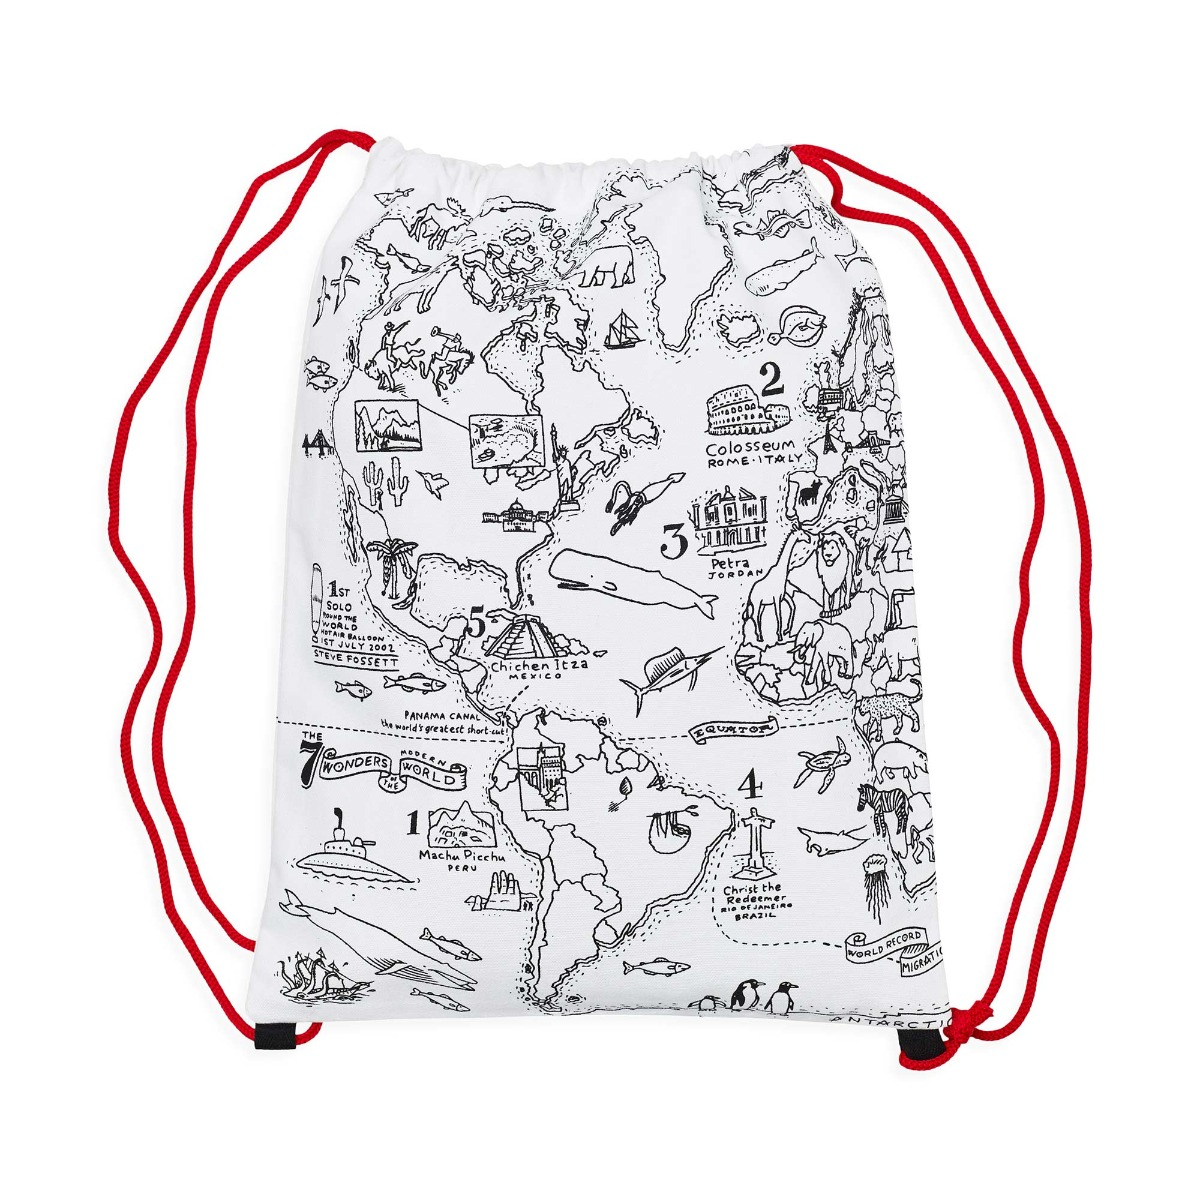 Doodle map backpack royal academy of arts shop royal academy doodle map backpack royal academy of arts shop royal academy of arts gumiabroncs Image collections